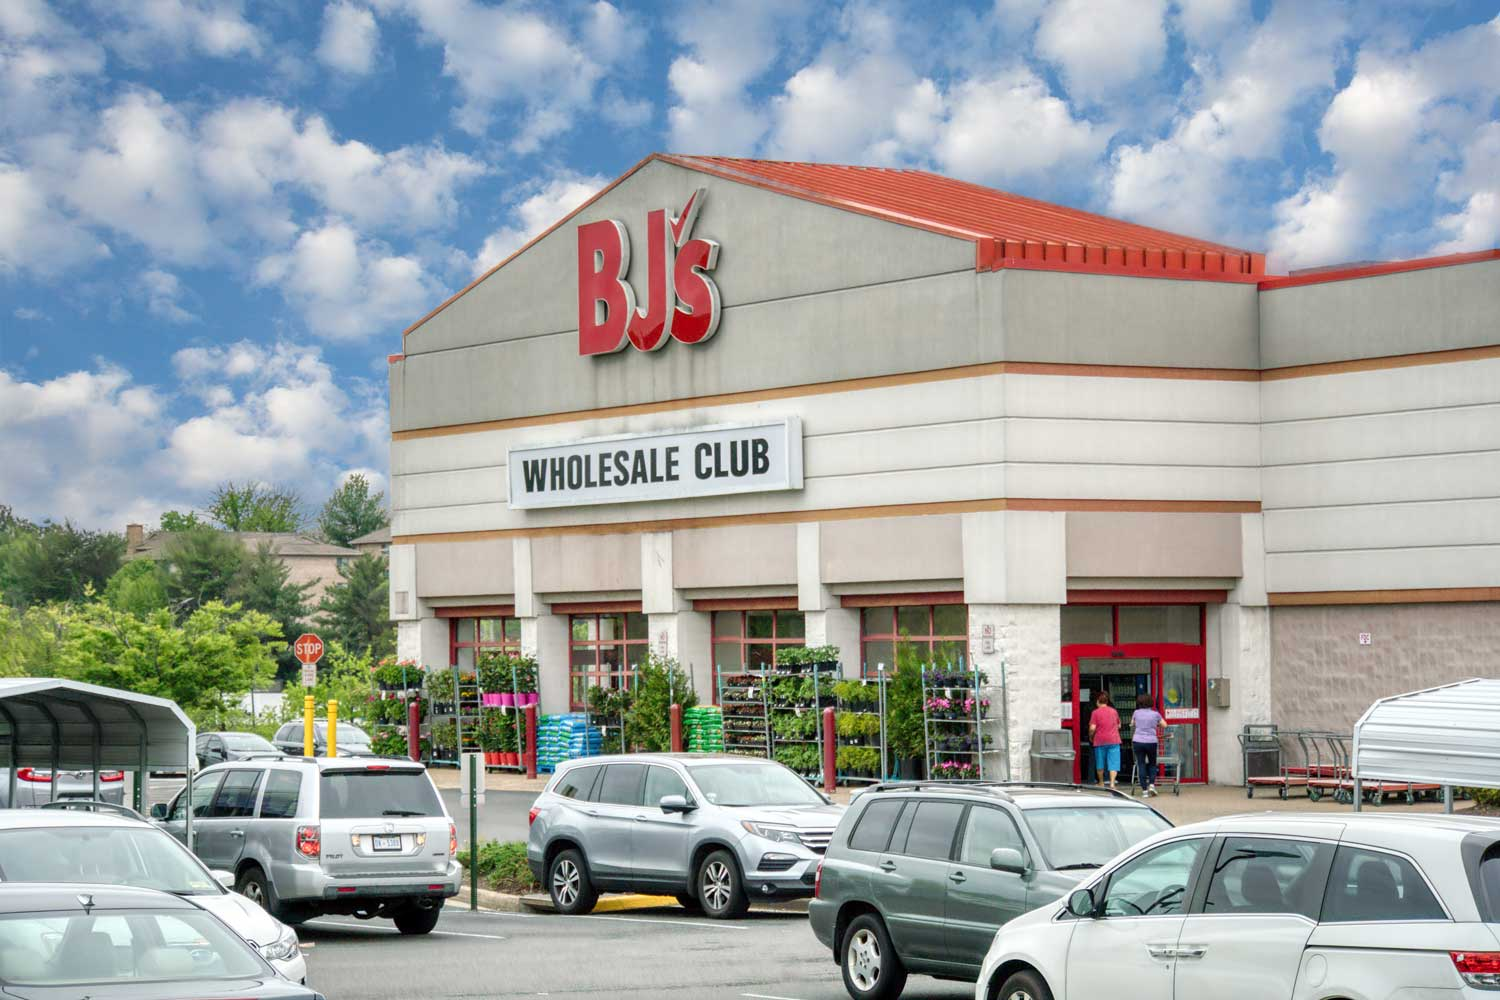 BJ's Wholesale Club is 10 minutes from Barcroft View Apartments in Falls Church, VA